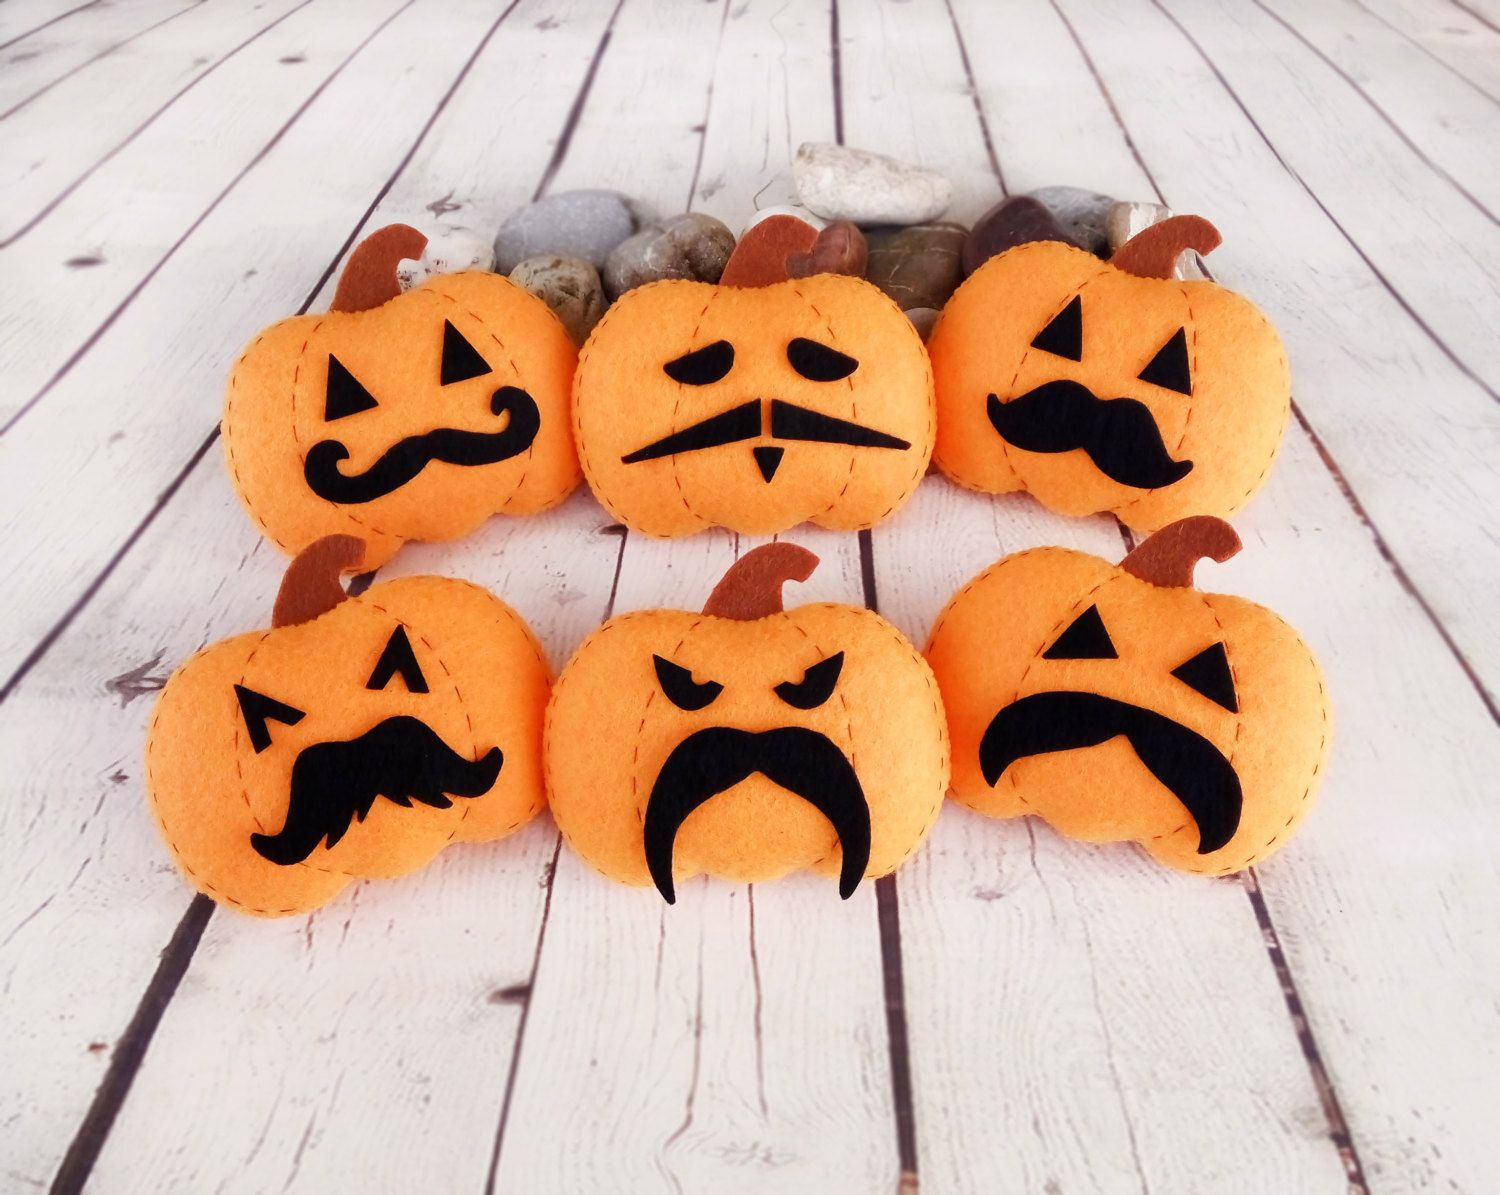 halloween decor pumpkin mustache baby shower halloween gift felt toy jack o lantern thanksgiving decor autumn - Etsy Halloween Decorations